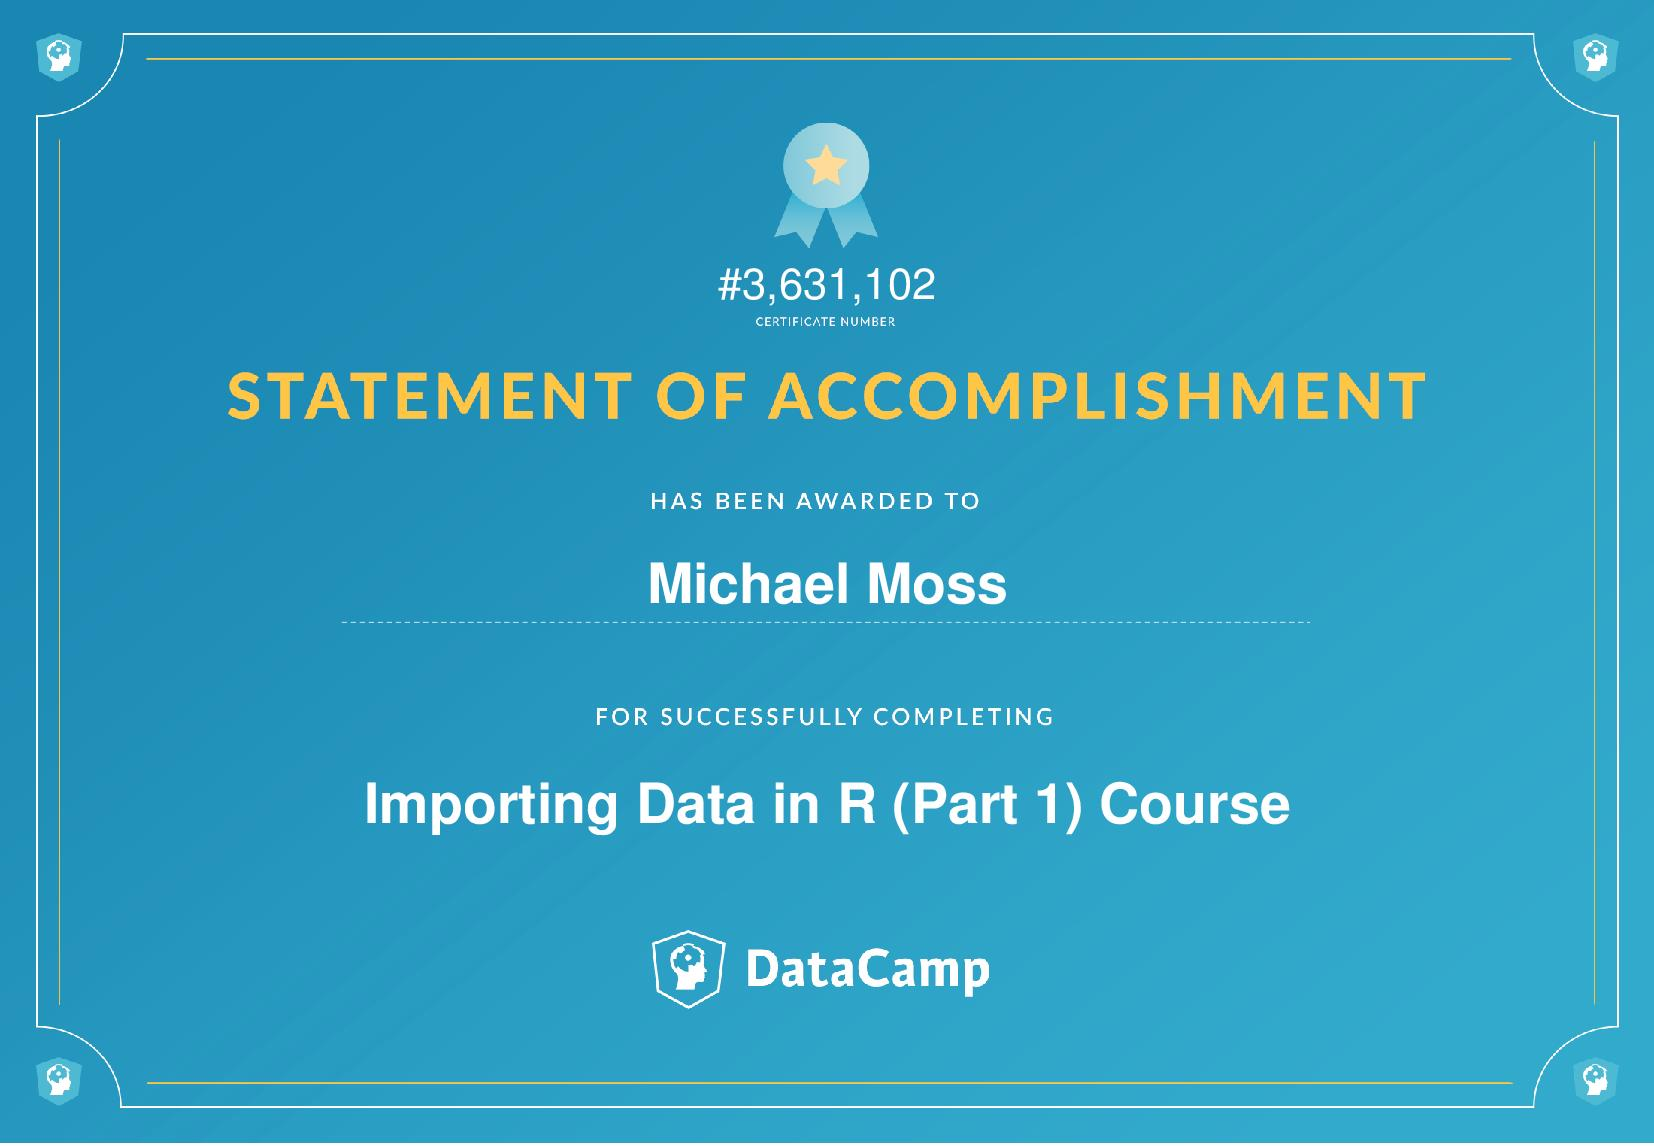 Importing Data in R (Part 1) Certificate